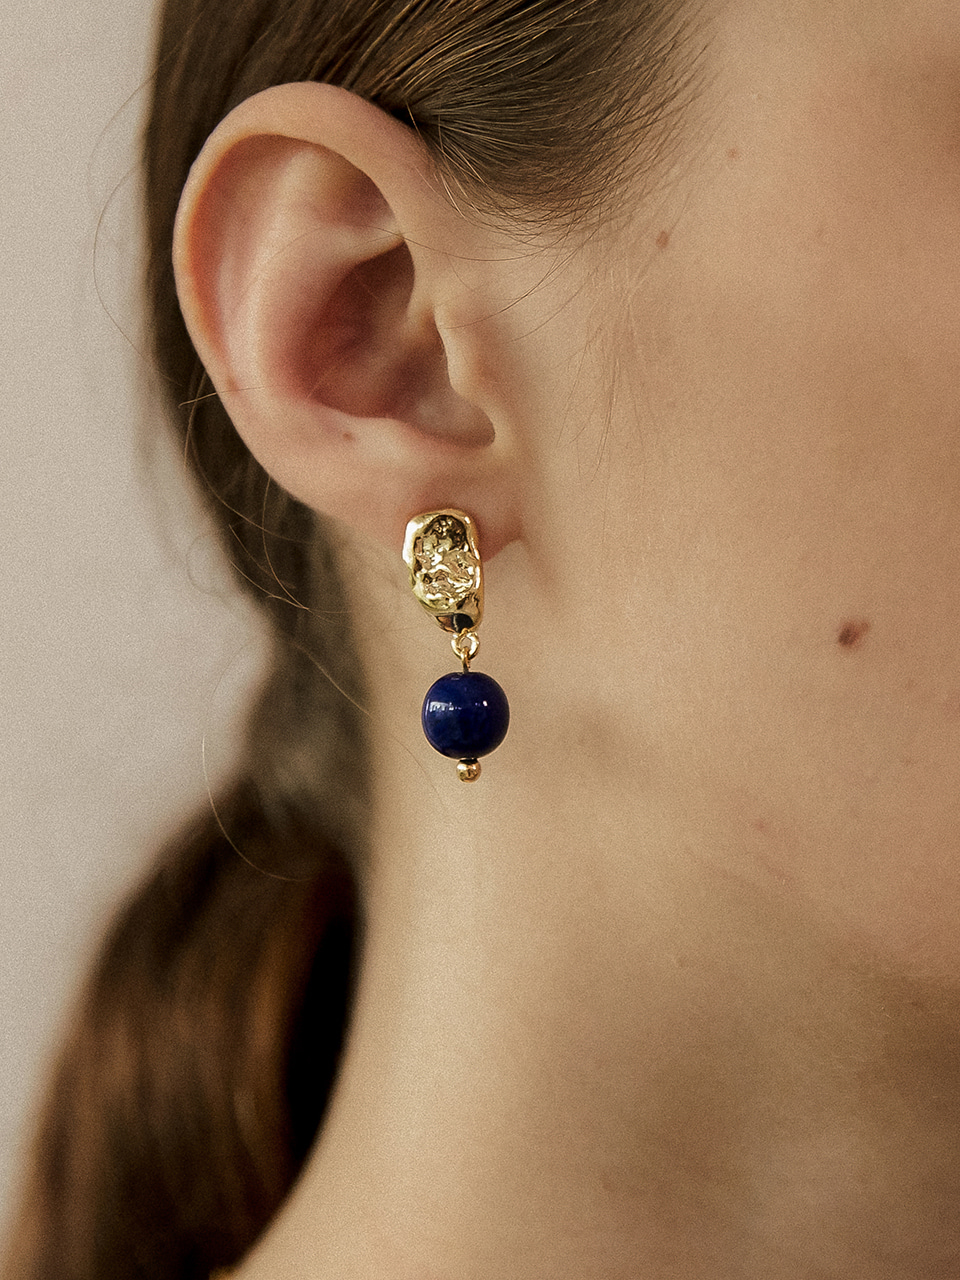 navy ball earring